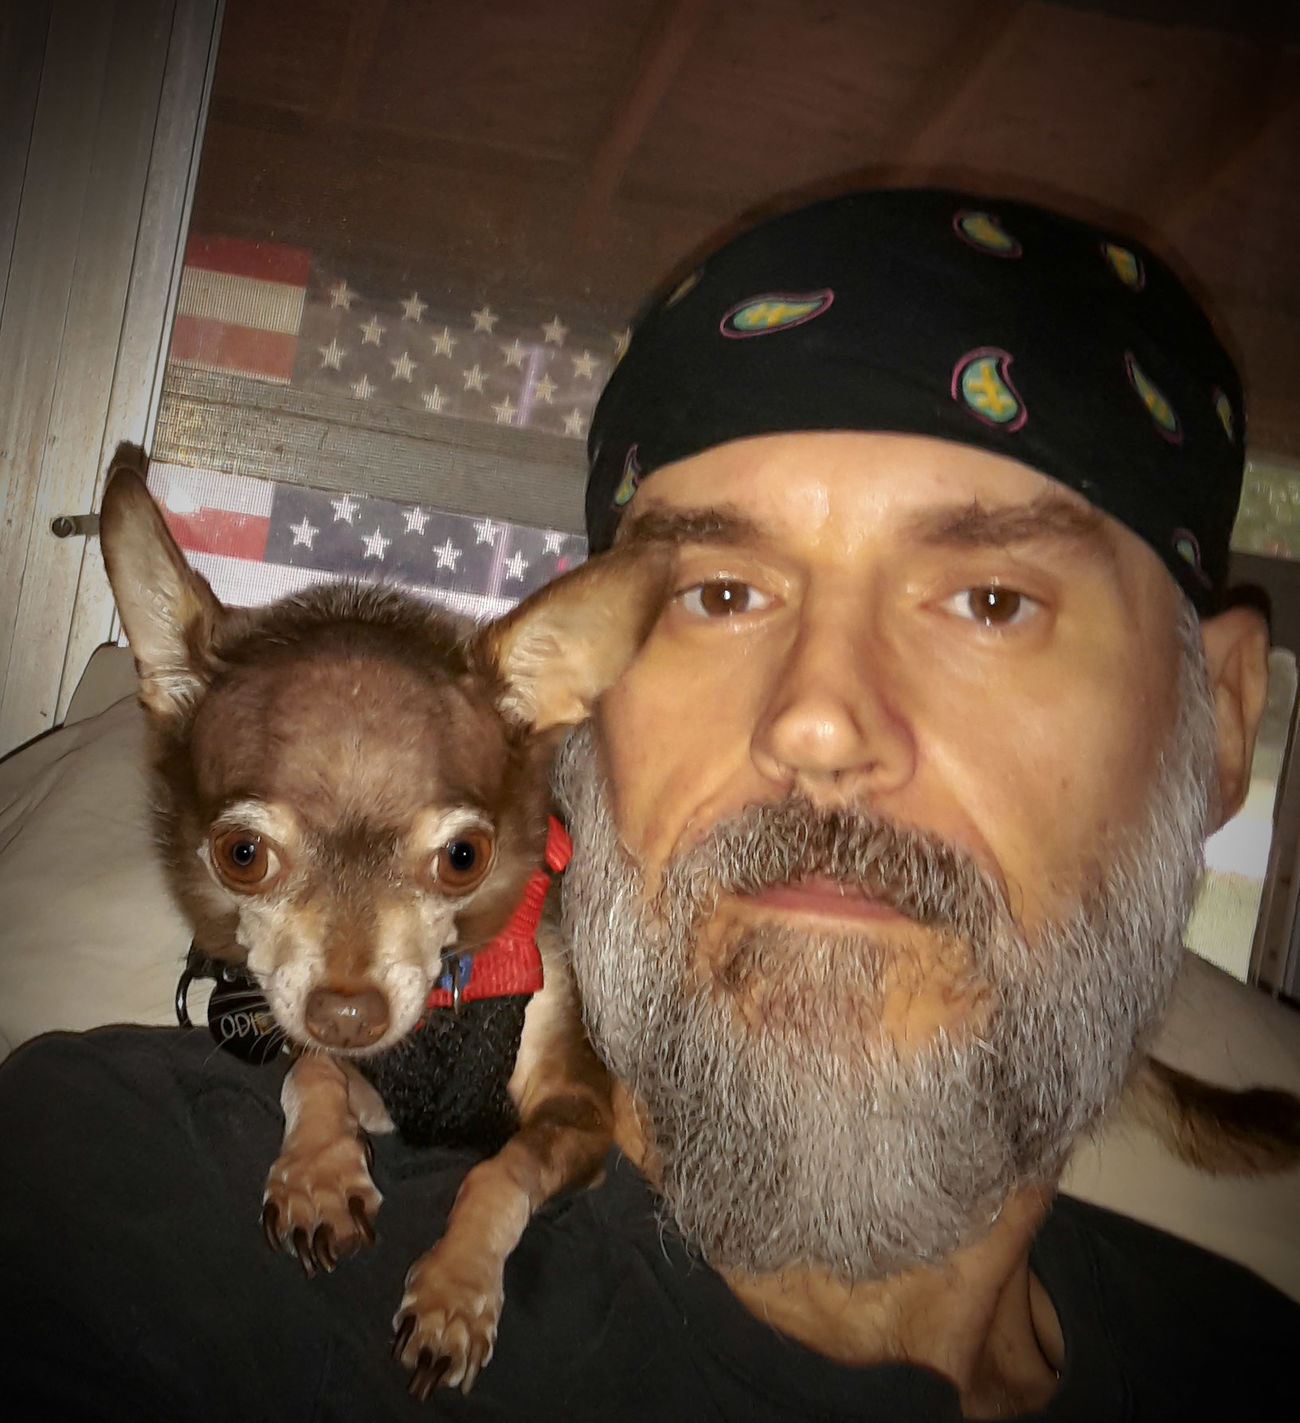 Odie Cu-Jose My Best Friend Chihuahuas<3 Happy Dogs My Dogs Are Cooler Than Your Kids Chihuahua Chihuahua Lovers Pampered Pets Partners In Crime My Life ❤ Casa De Albatross Fellsmere, Florida USA King Of The Hill